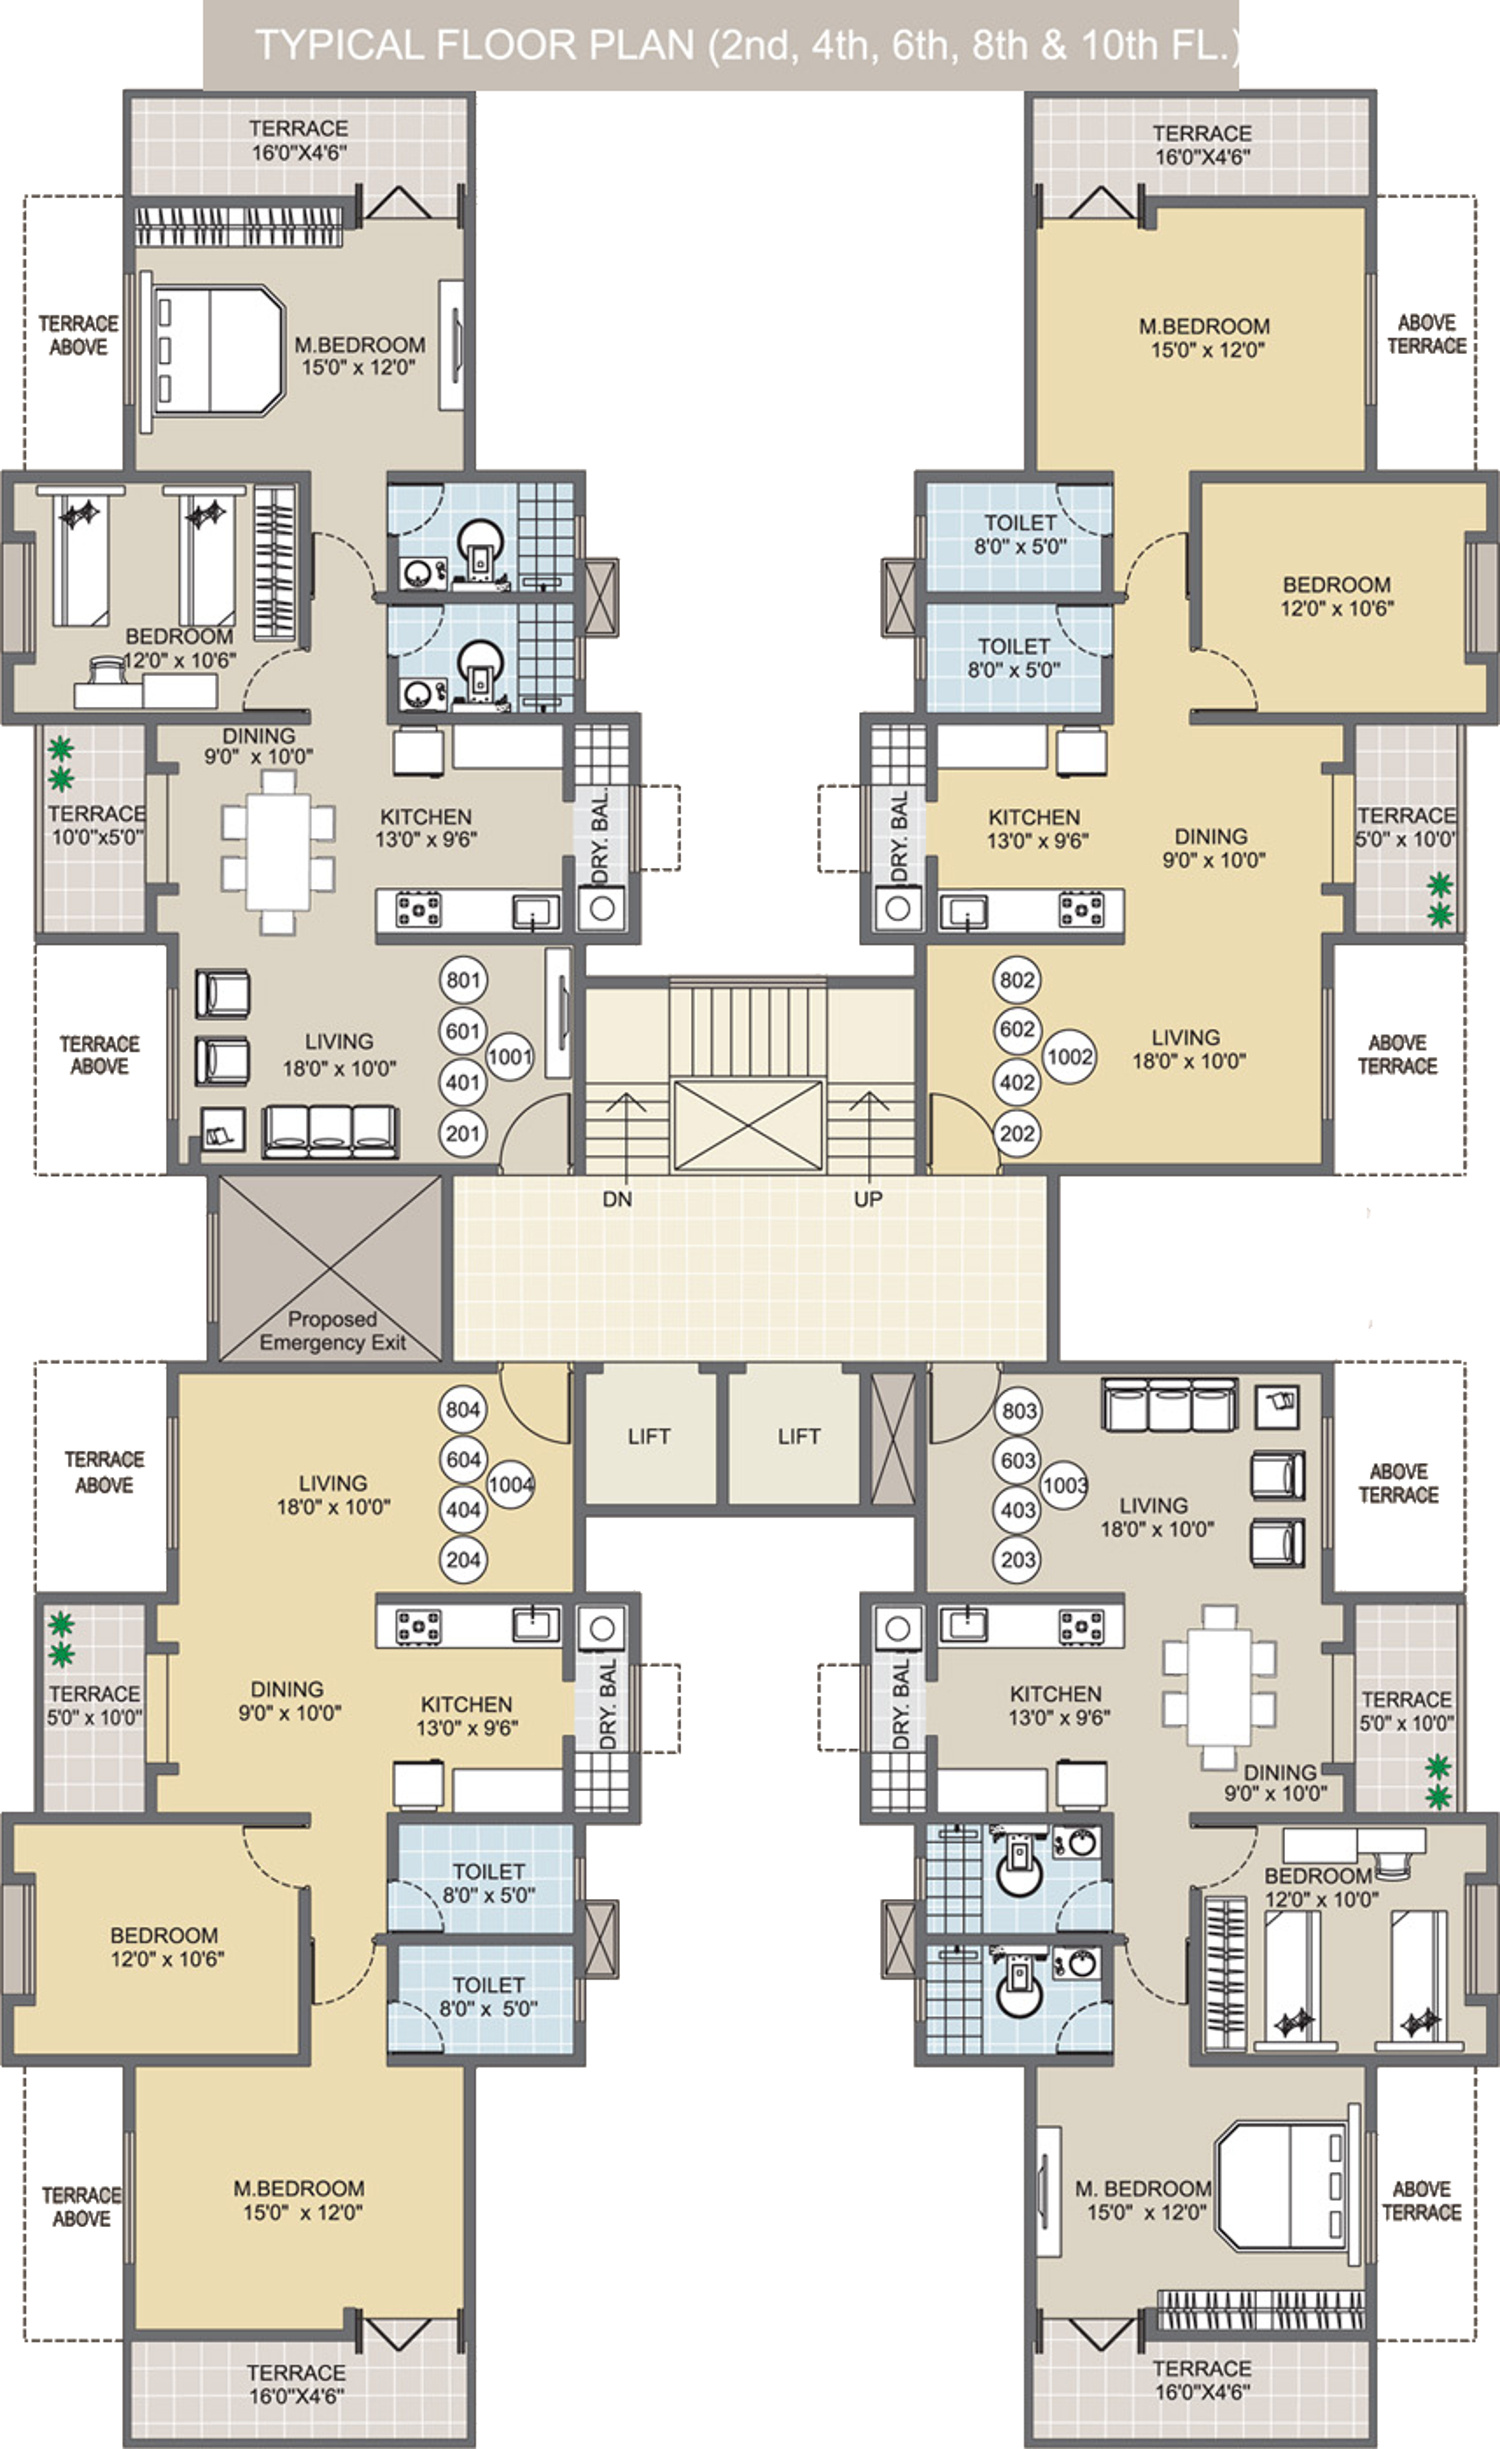 Foyer Plan Qatar : Sq ft bhk t apartment for sale in m y construction